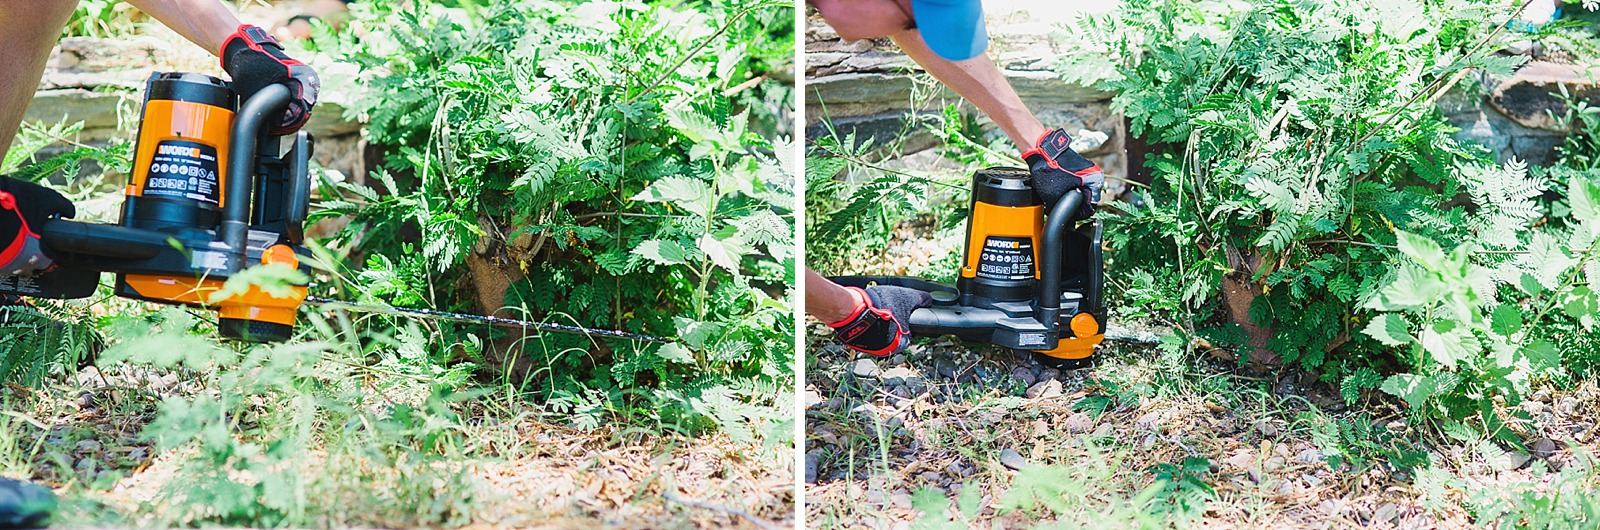 worx-chain-saw-review-gardening-blogger-home-diana-elizabeth-117a